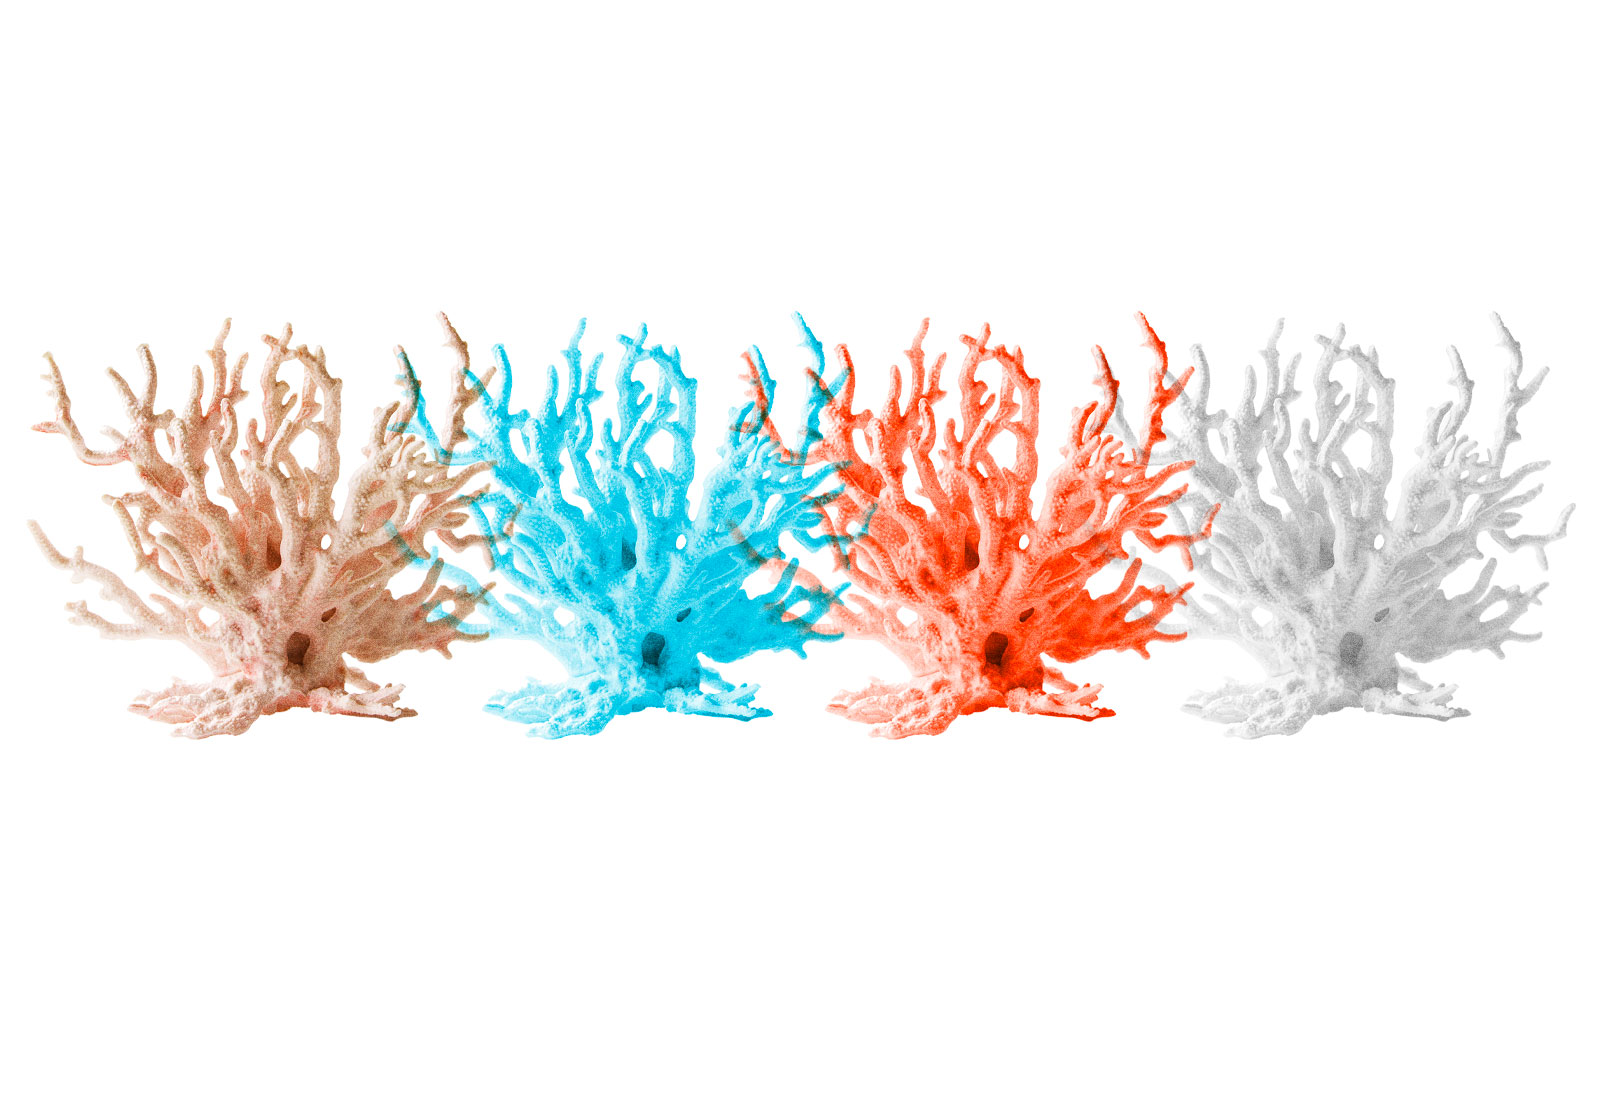 Collage: Four pieces of coral in a row; one pink, one blue, one red, and one greyscale